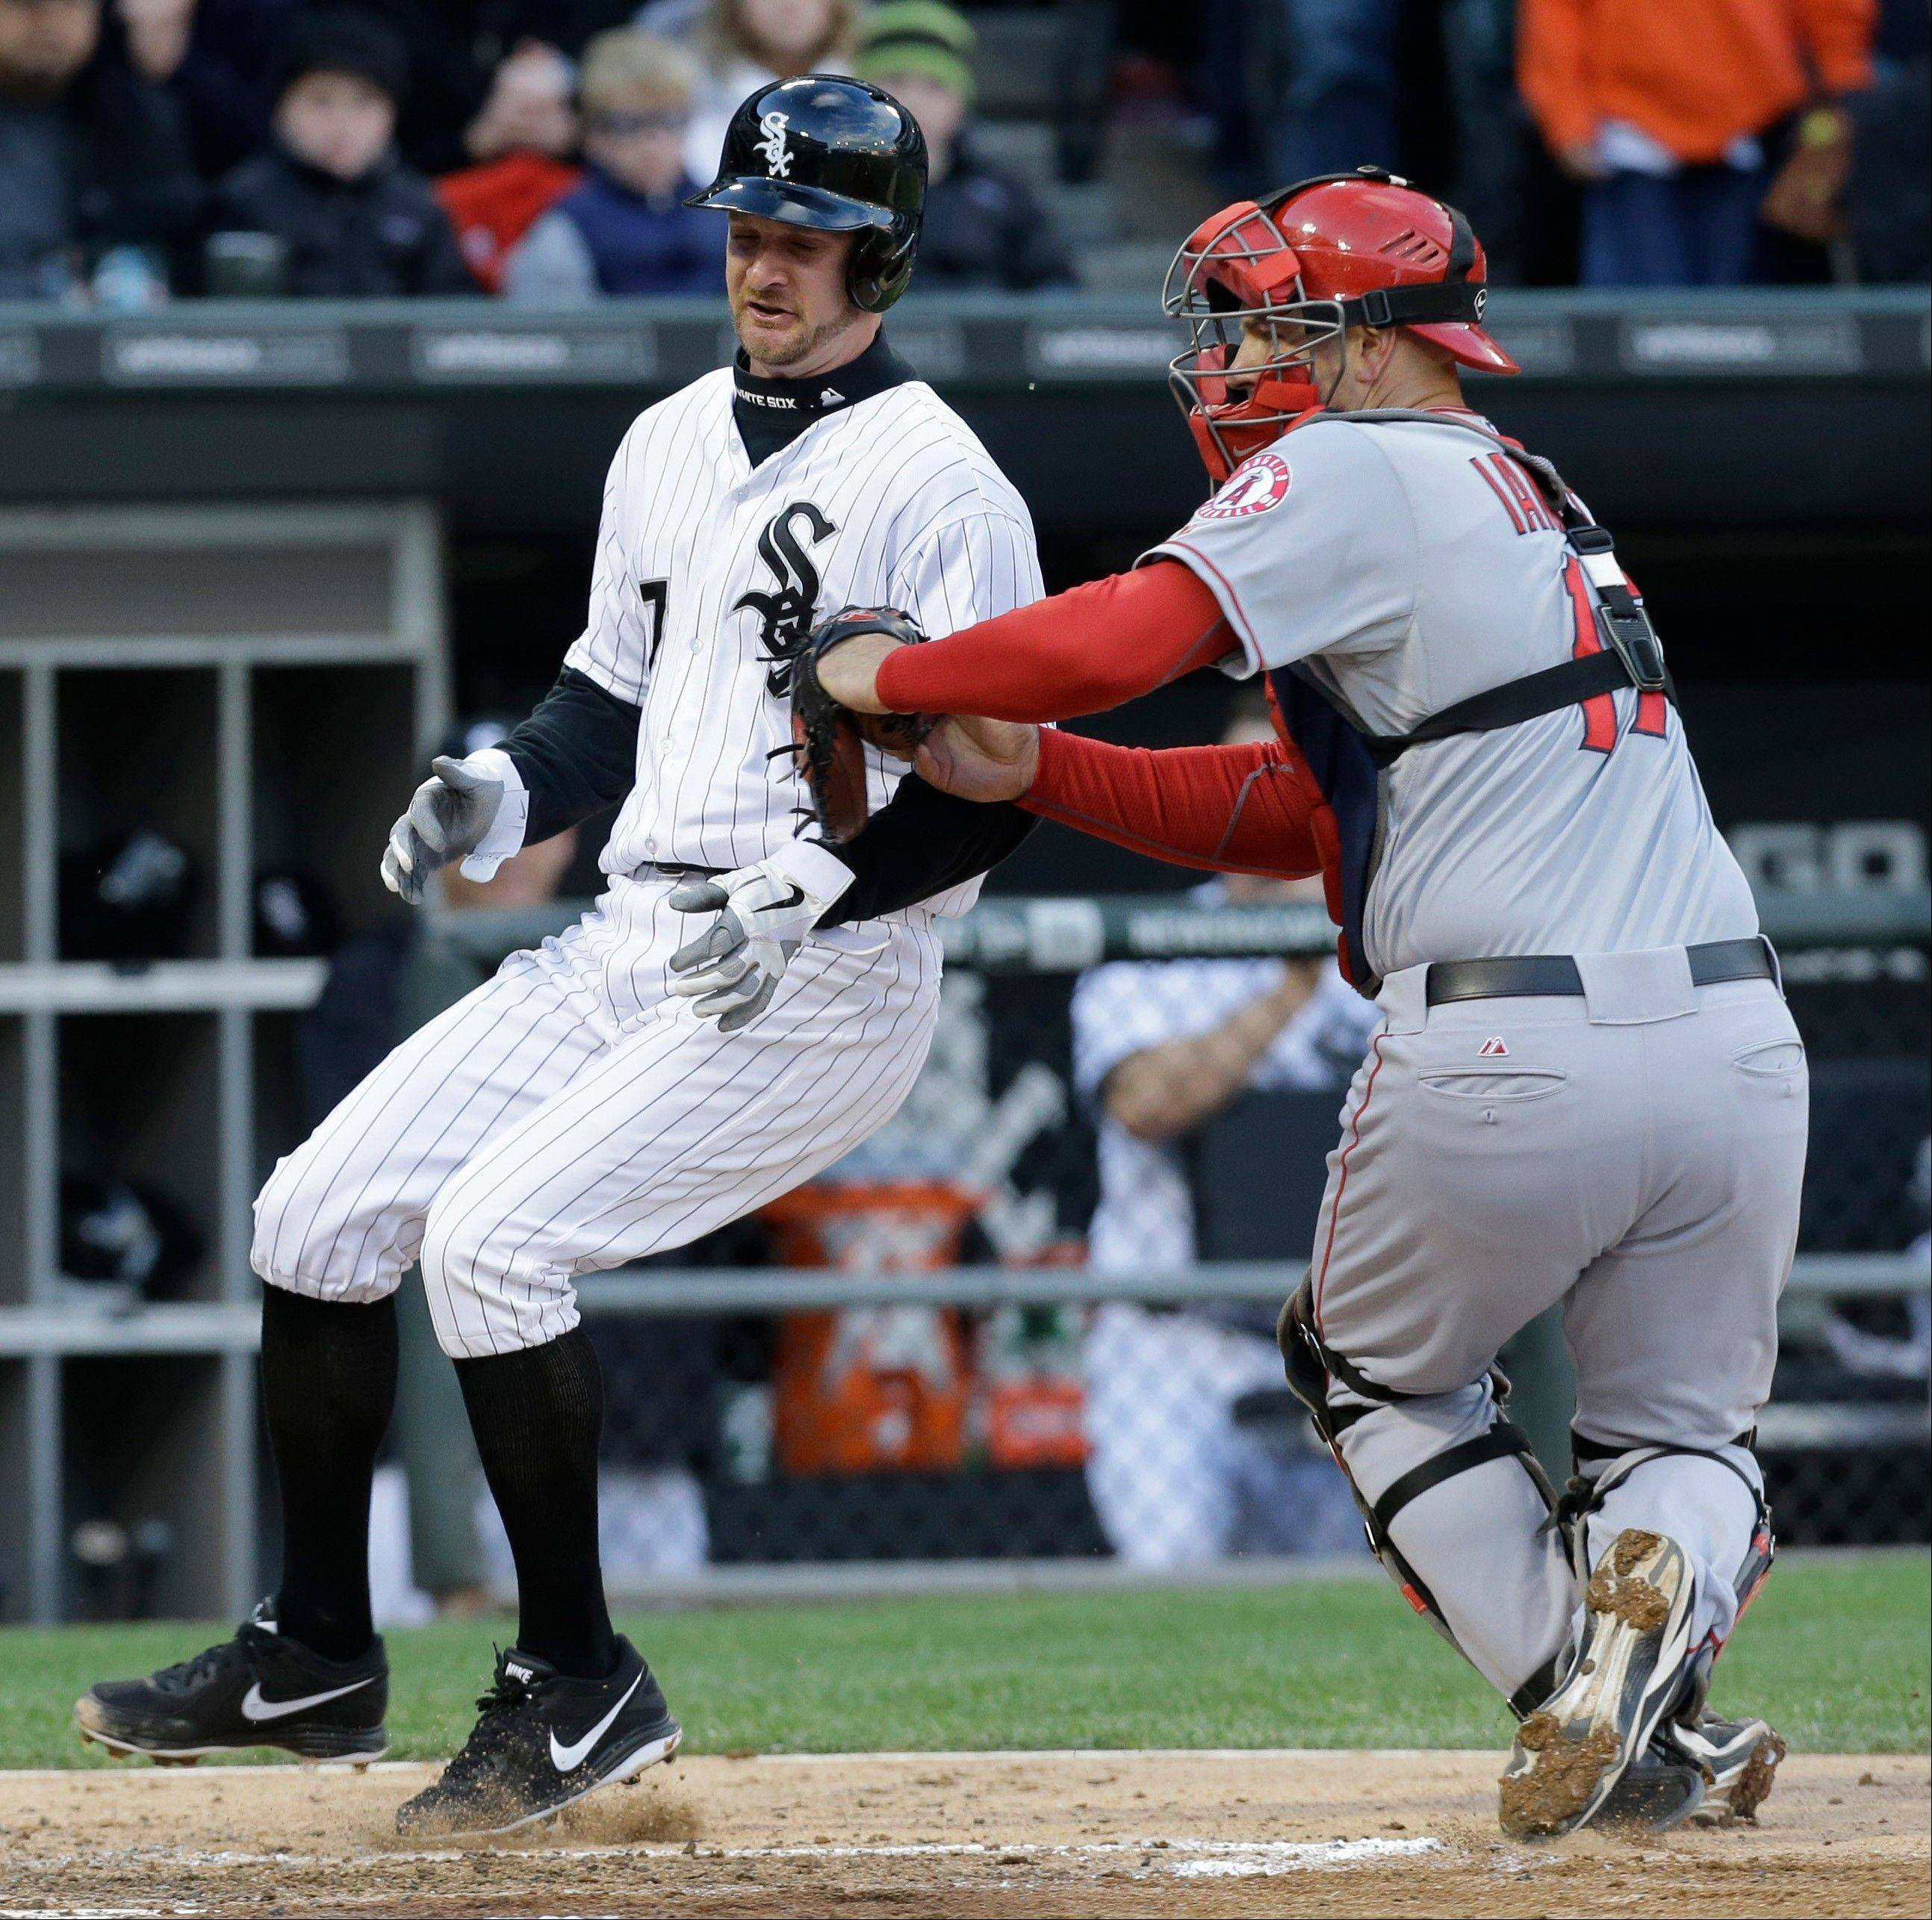 Los Angeles Angels catcher Chris Iannetta, right, tags out Chicago White Sox�s Jeff Keppinger at home during the second inning of a baseball game in Chicago, Saturday, May 11, 2013.